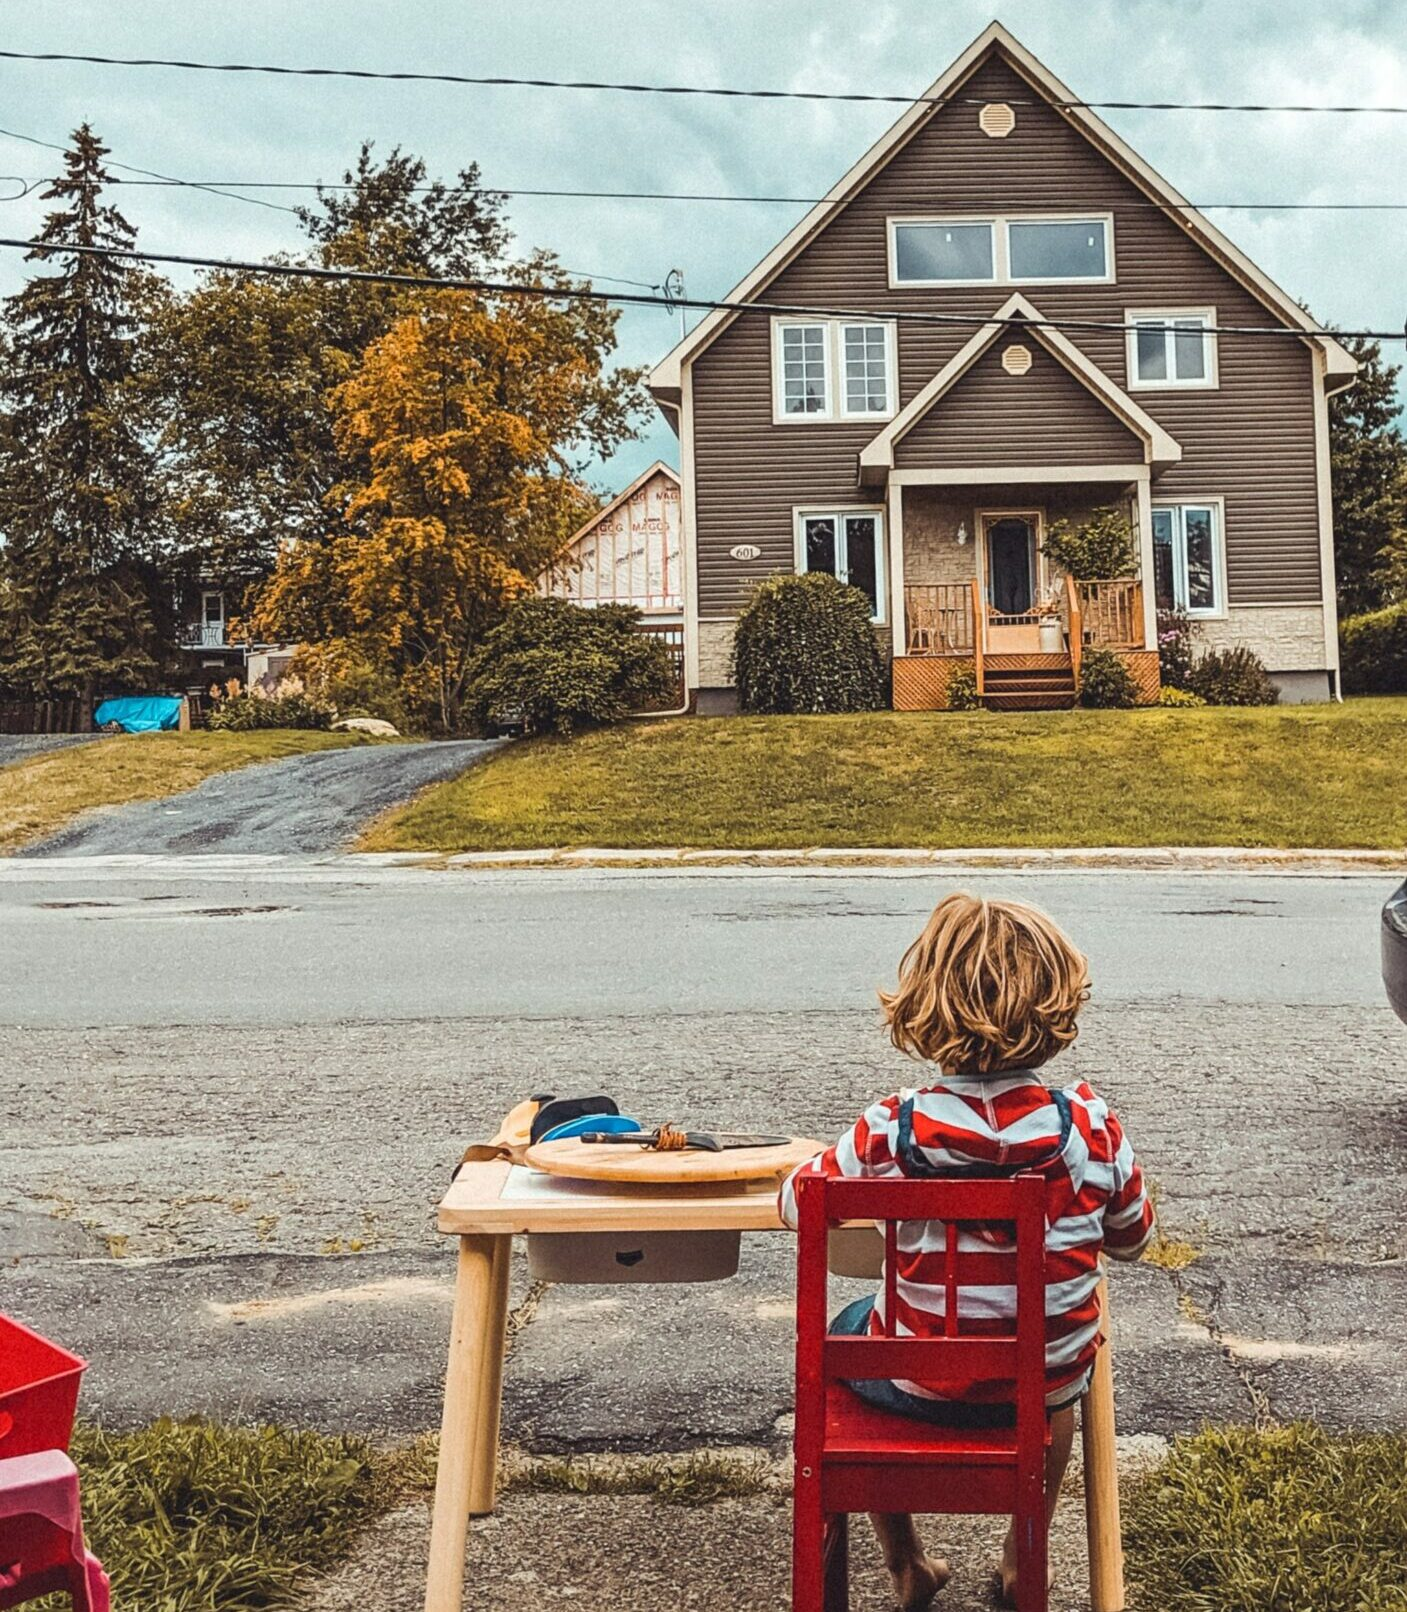 Young redheaded boy sitting at a wooden table across the street from a house.